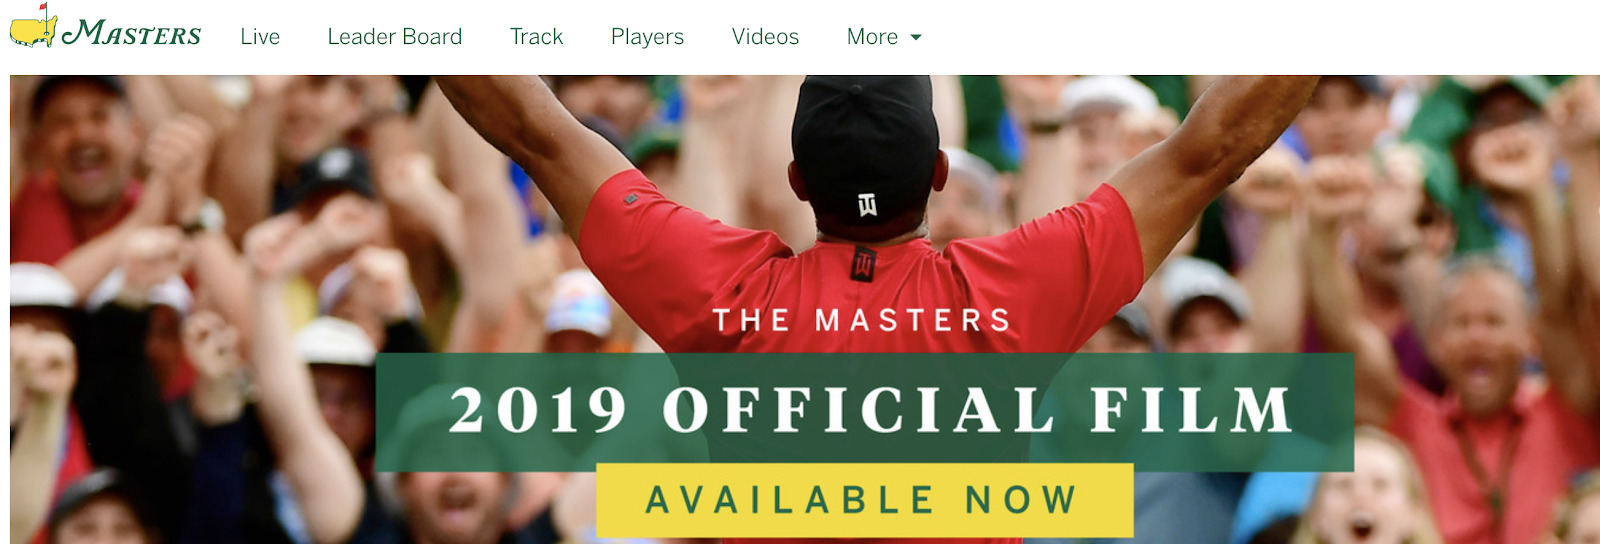 Masters home page